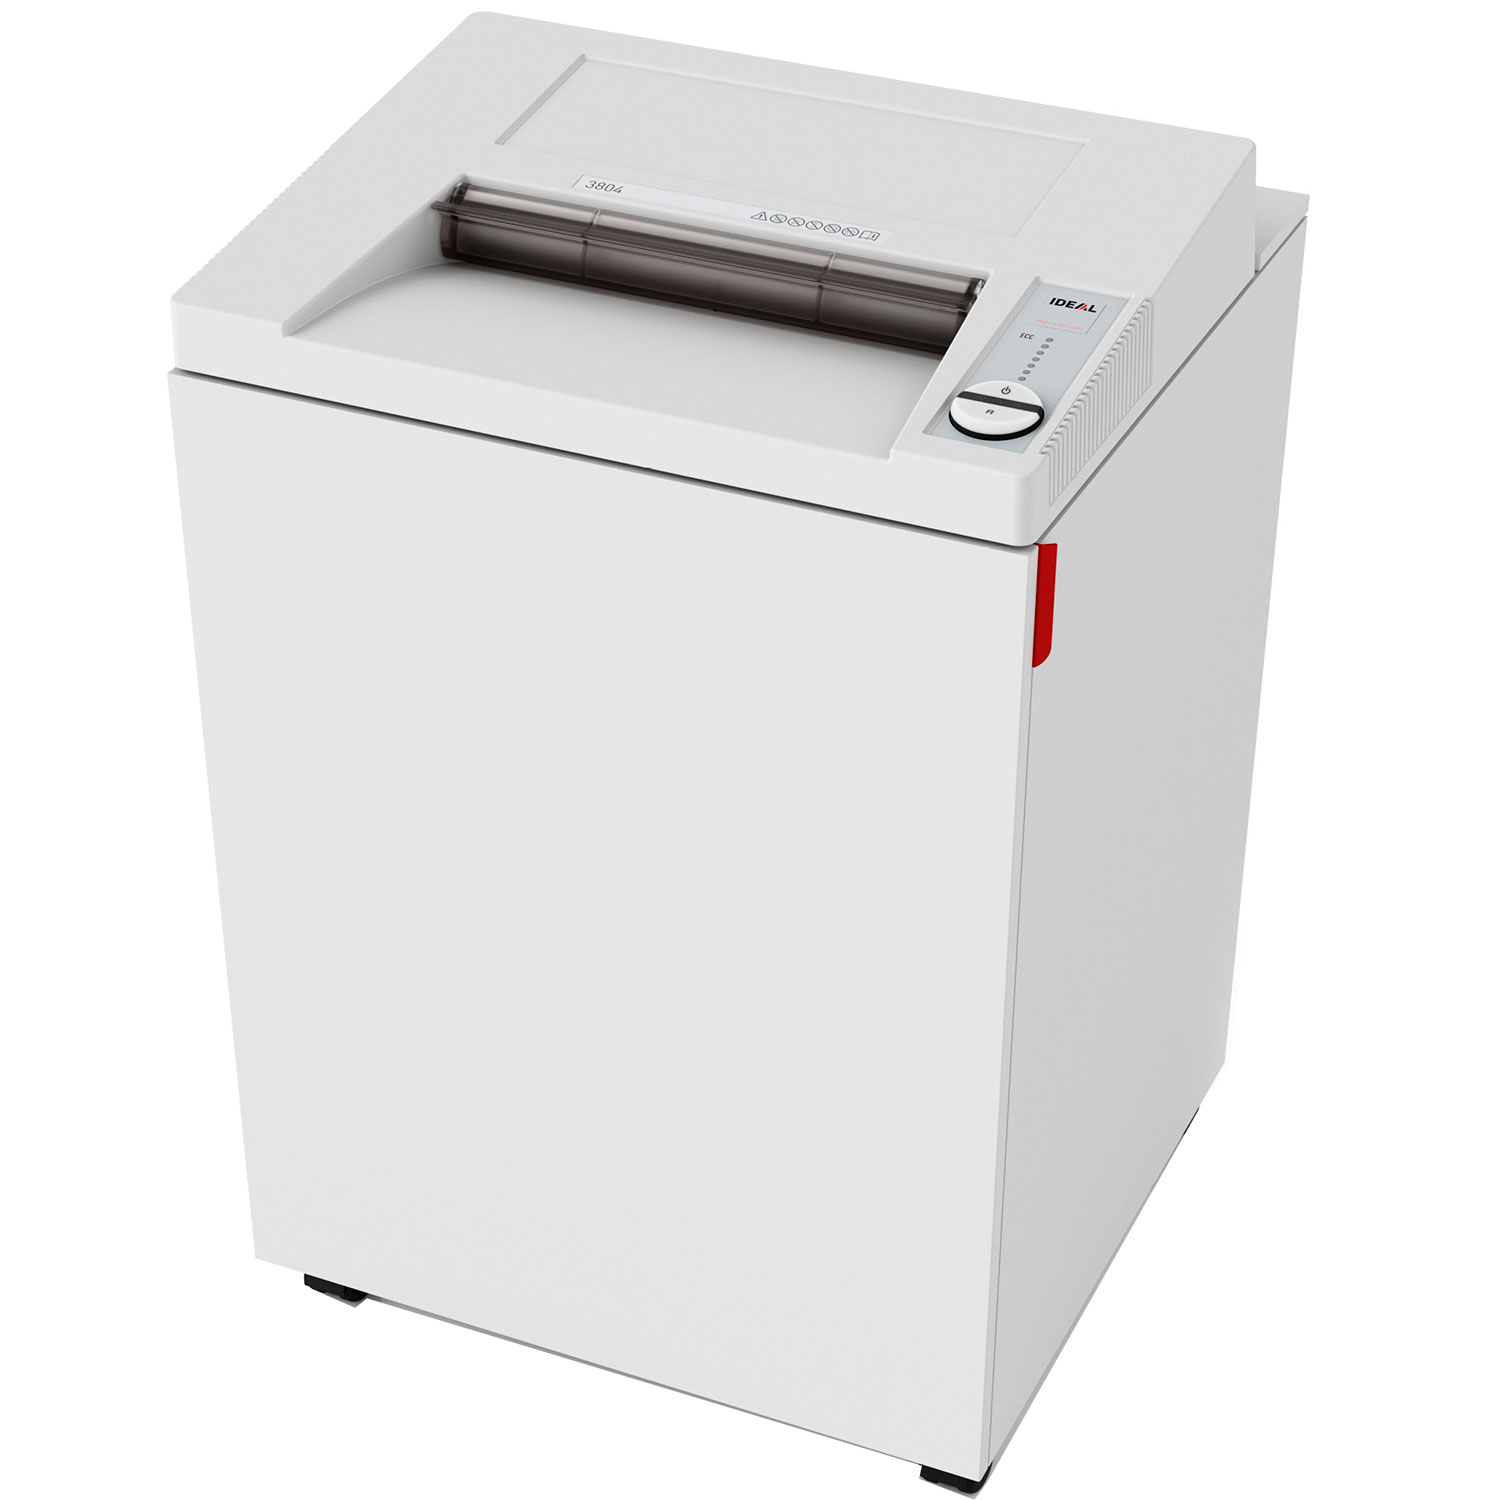 IDEAL 3804 Cross-Cut 2 x 15mm Paper Shredder